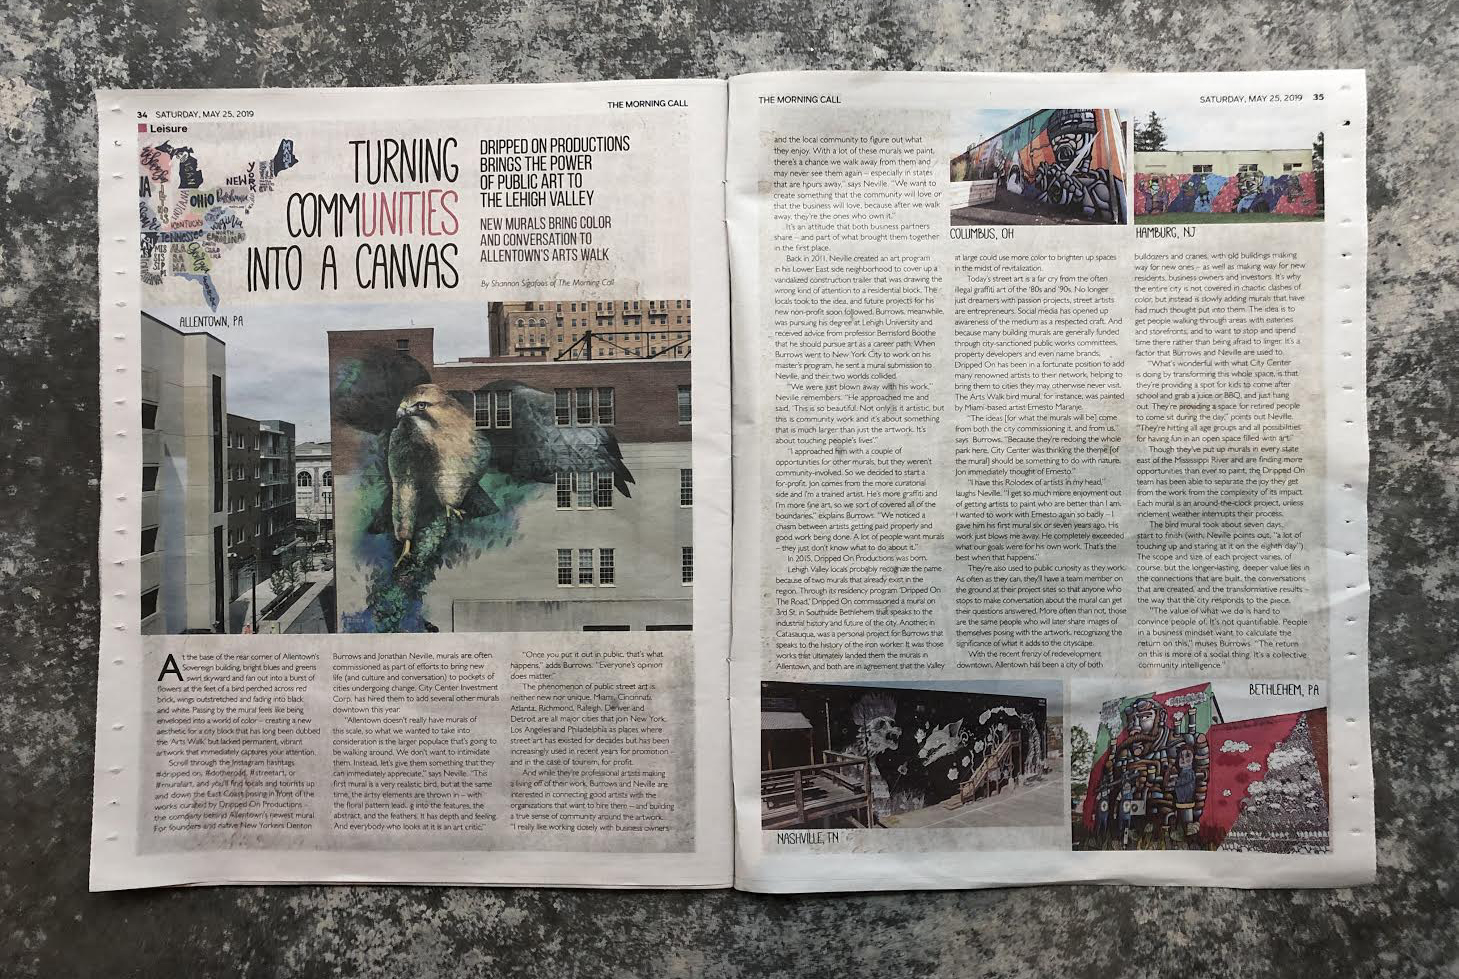 morning-call-newspaper-dripped-on-article-city-center-allentown